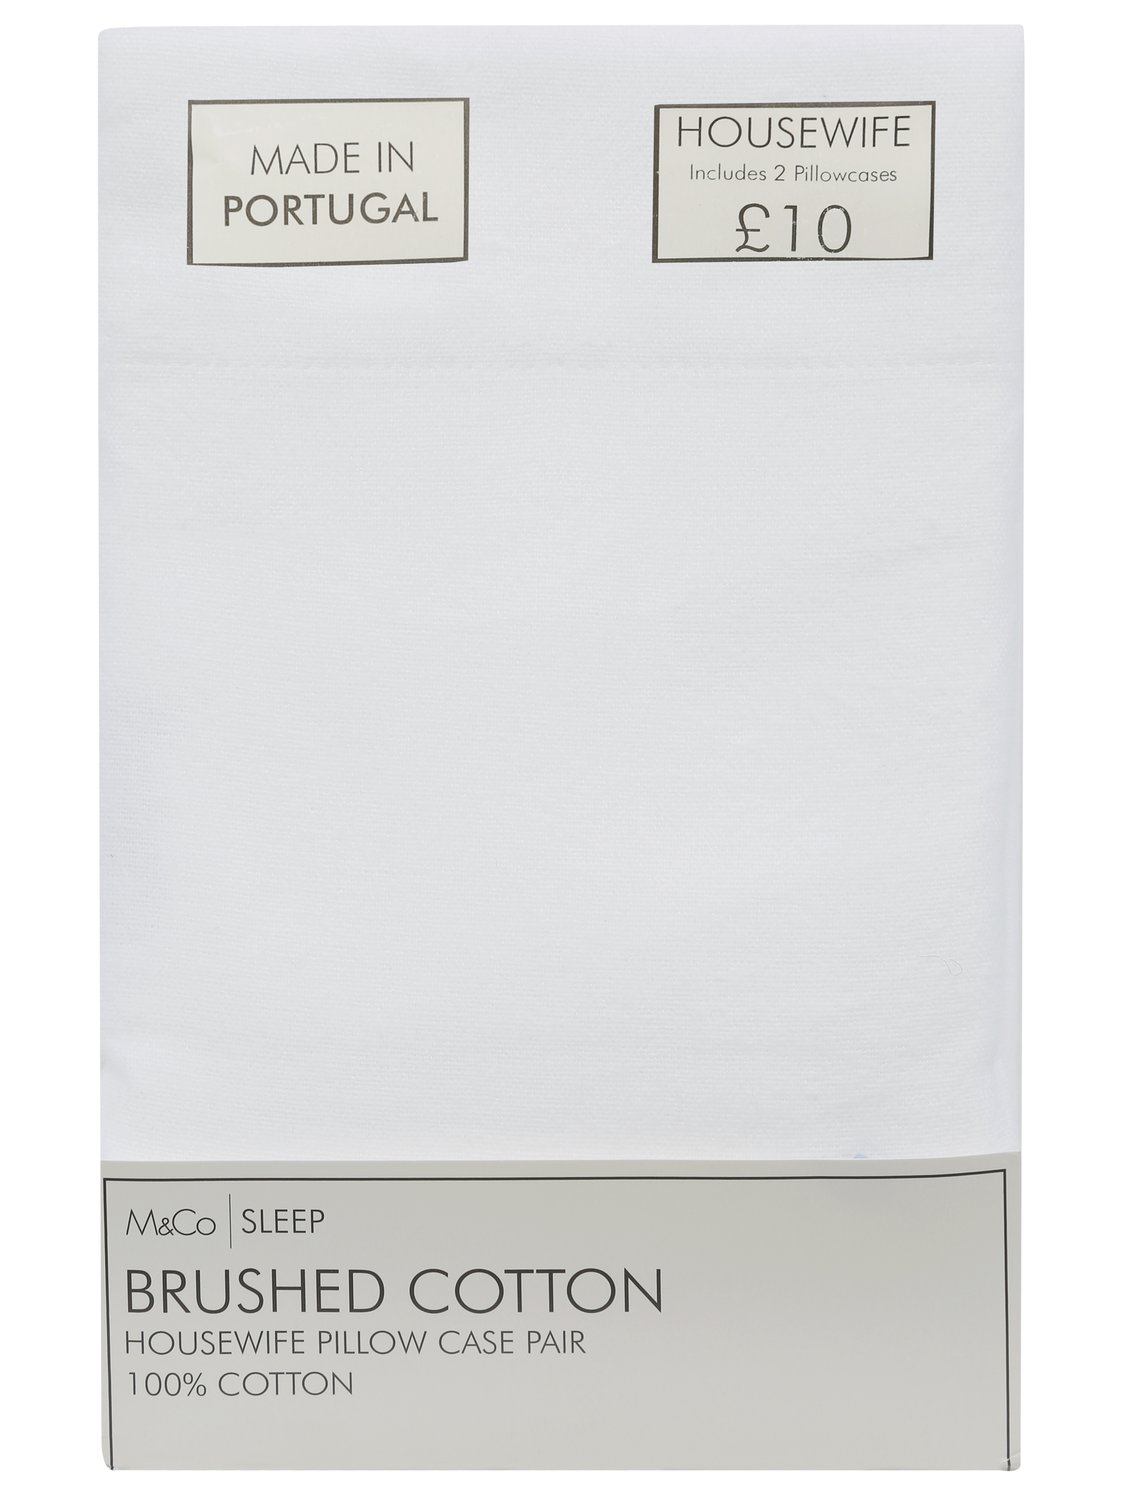 home brushed cotton pillowcase pair 100% cotton pack of two cases  - white